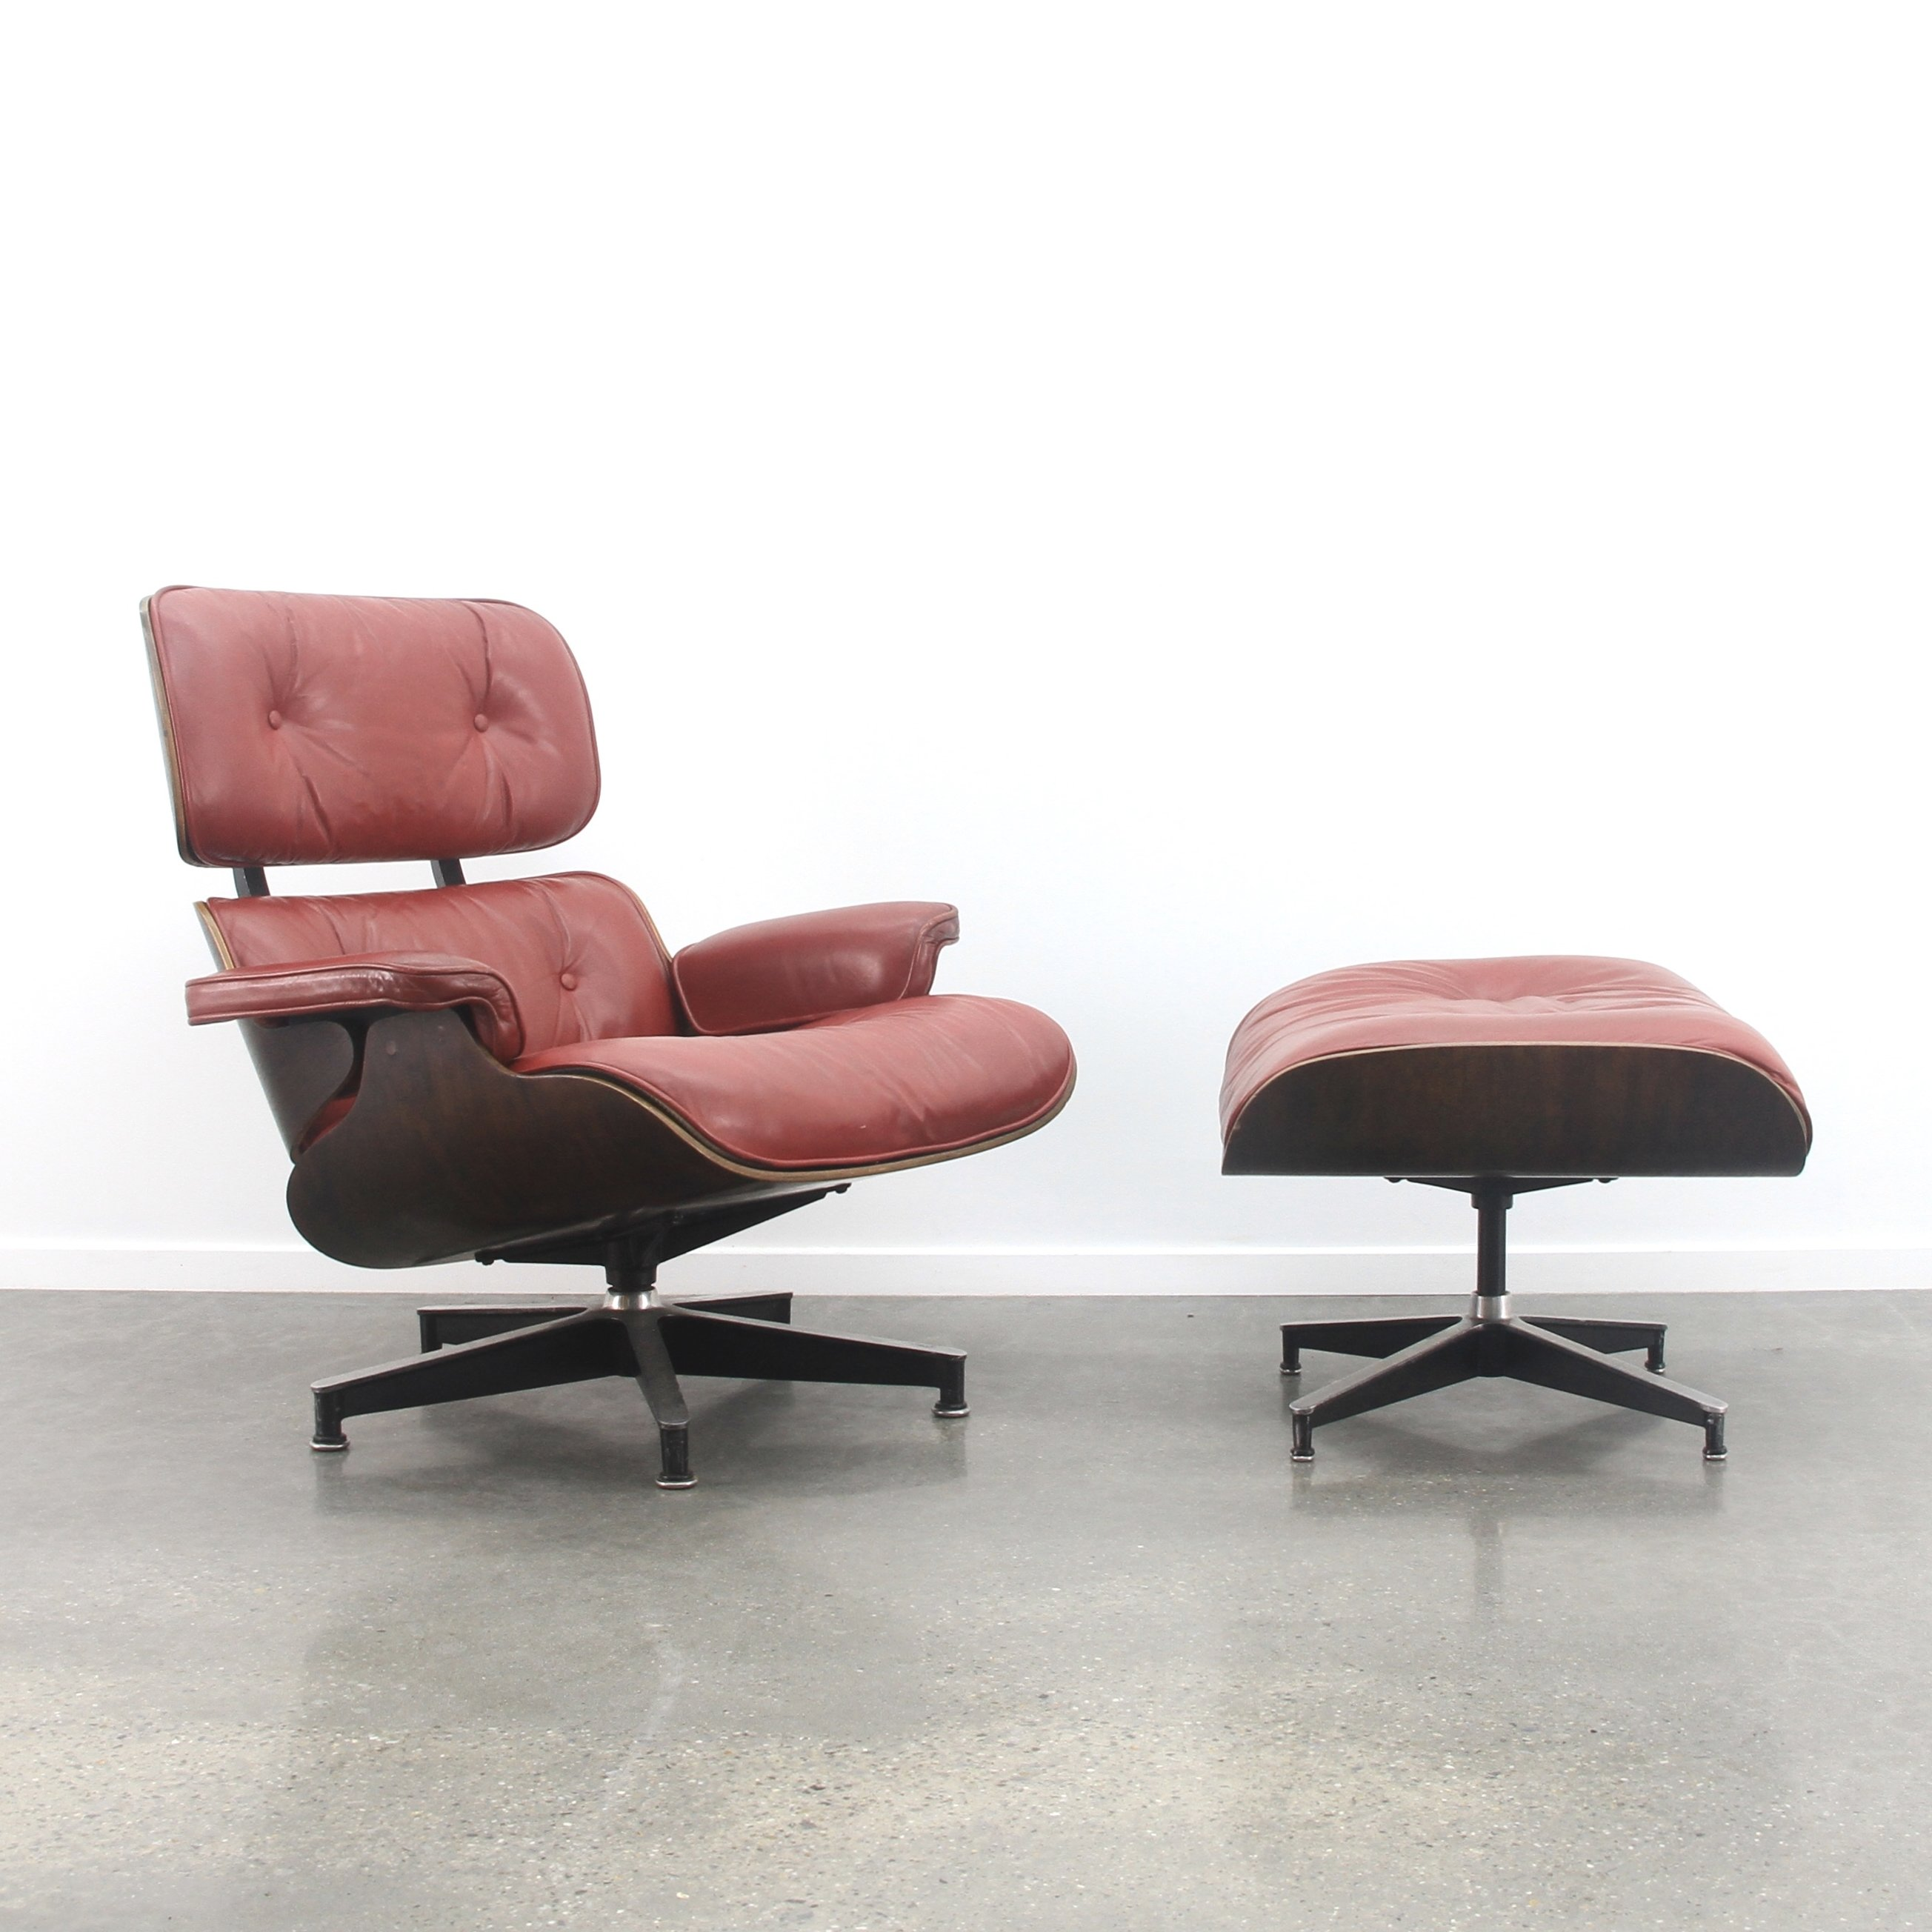 Erstaunlich Eames Lounge Chair + Ottoman In Red Leather/dark Rosewood, 1960s